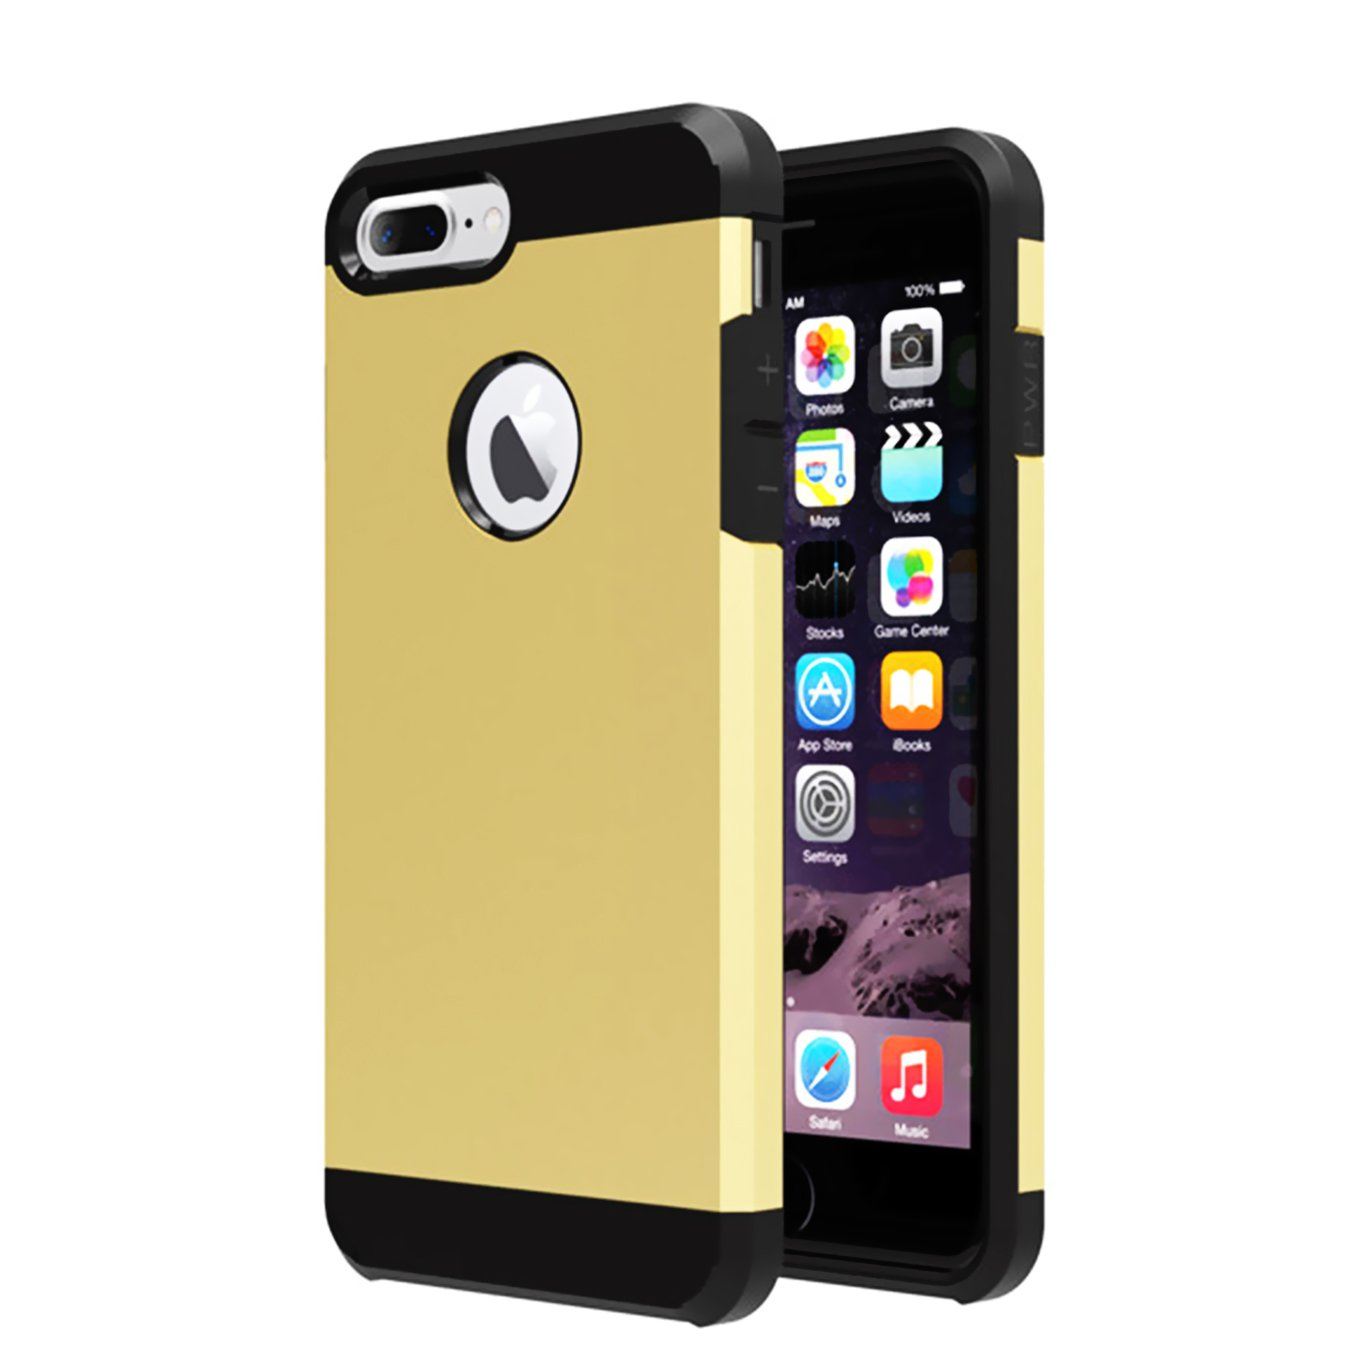 iPhone 7 plus Case,iBarbe Slim Extreme Heavy Duty Rugged Hybrid Impact 2 Color Shockproof Soft Rugged Hard PC Anti-slip Cover Armor Shock Absorption Protection for Apple iPhone7 plus(gold/black)